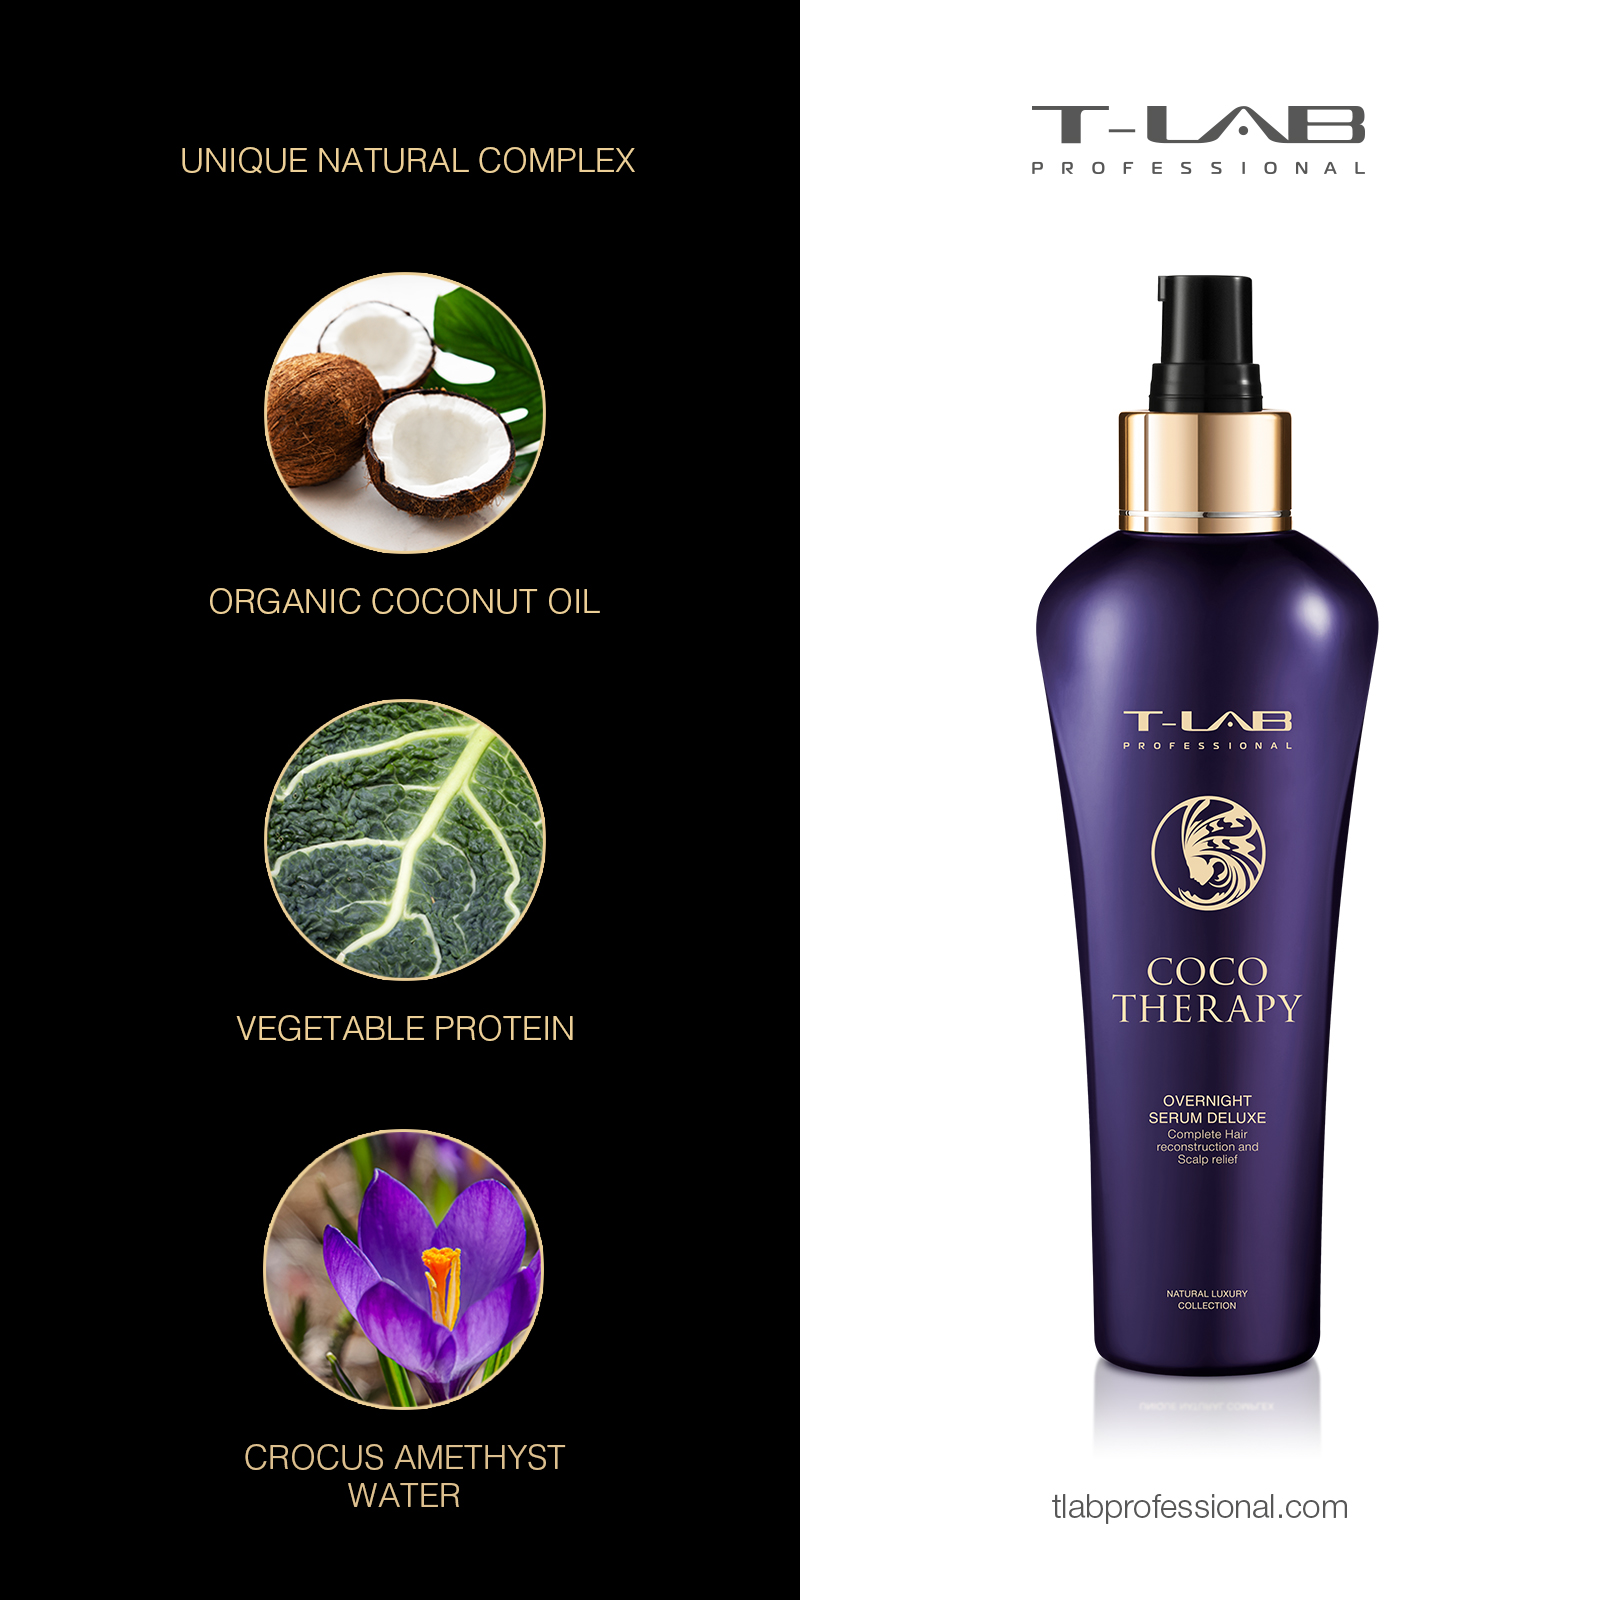 COCO THERAPY OVERNIGHT SERUM DELUXE - Crocus Amethyst Water, Vegetable Protein, Organic Coconut Oil